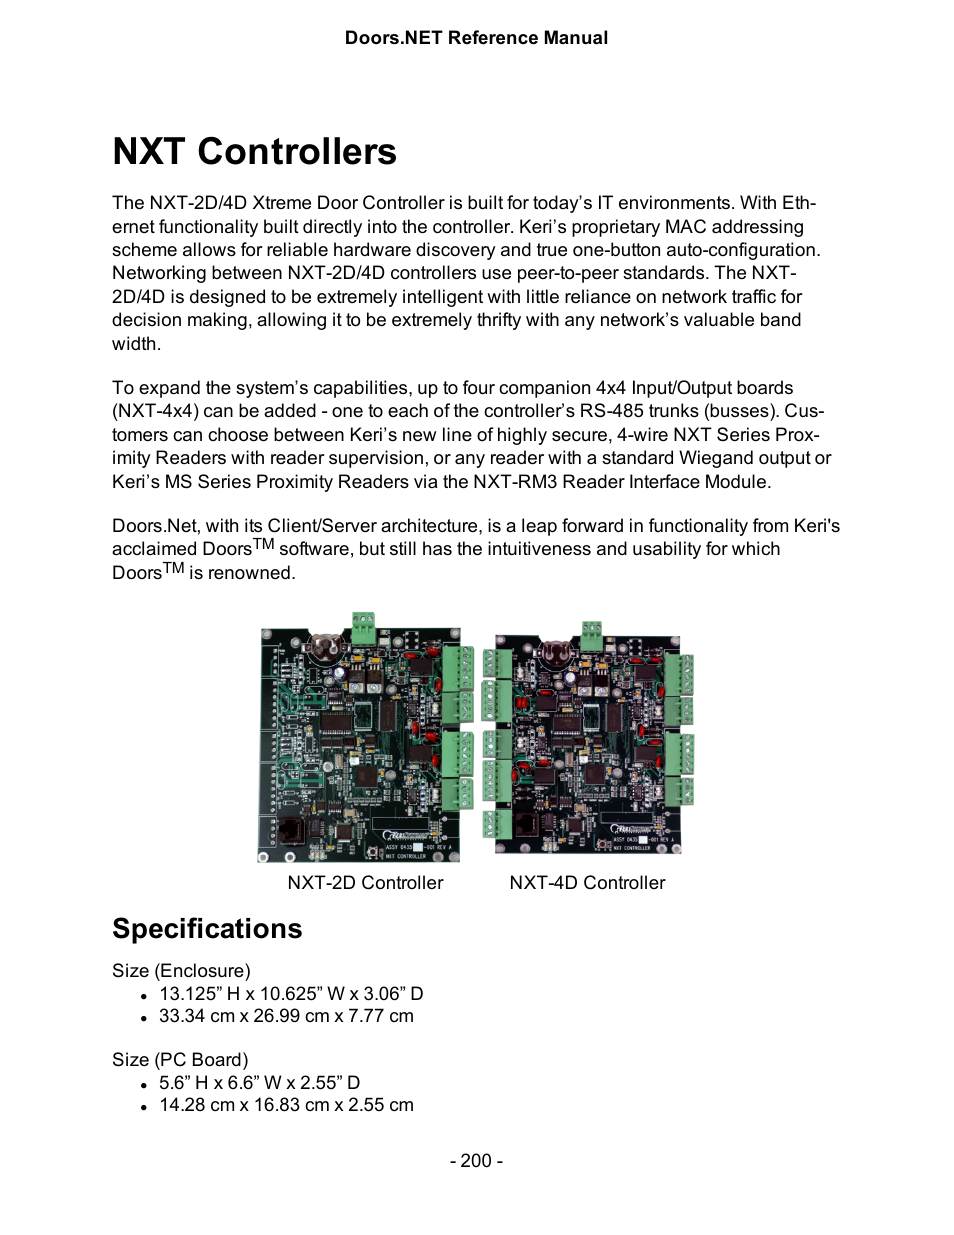 Nxt controllers Specifications | Keri Systems Doors.NET Manual User Manual | Page 200 / 602  sc 1 st  manualsdir.com : keri doors - pezcame.com